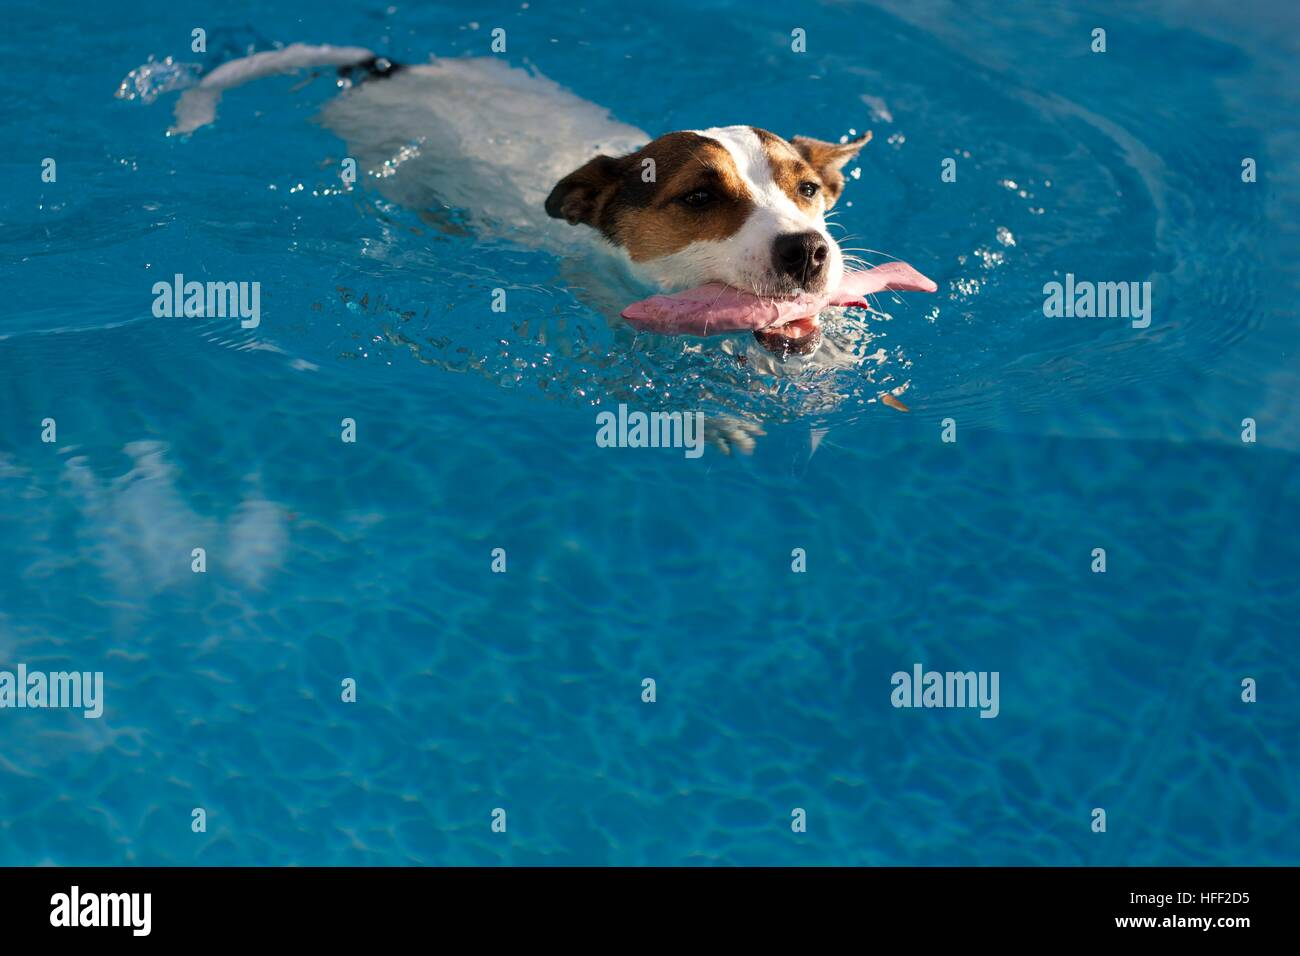 Dog swimming in swimming pool carrying a toy fish in her mouth on a ...